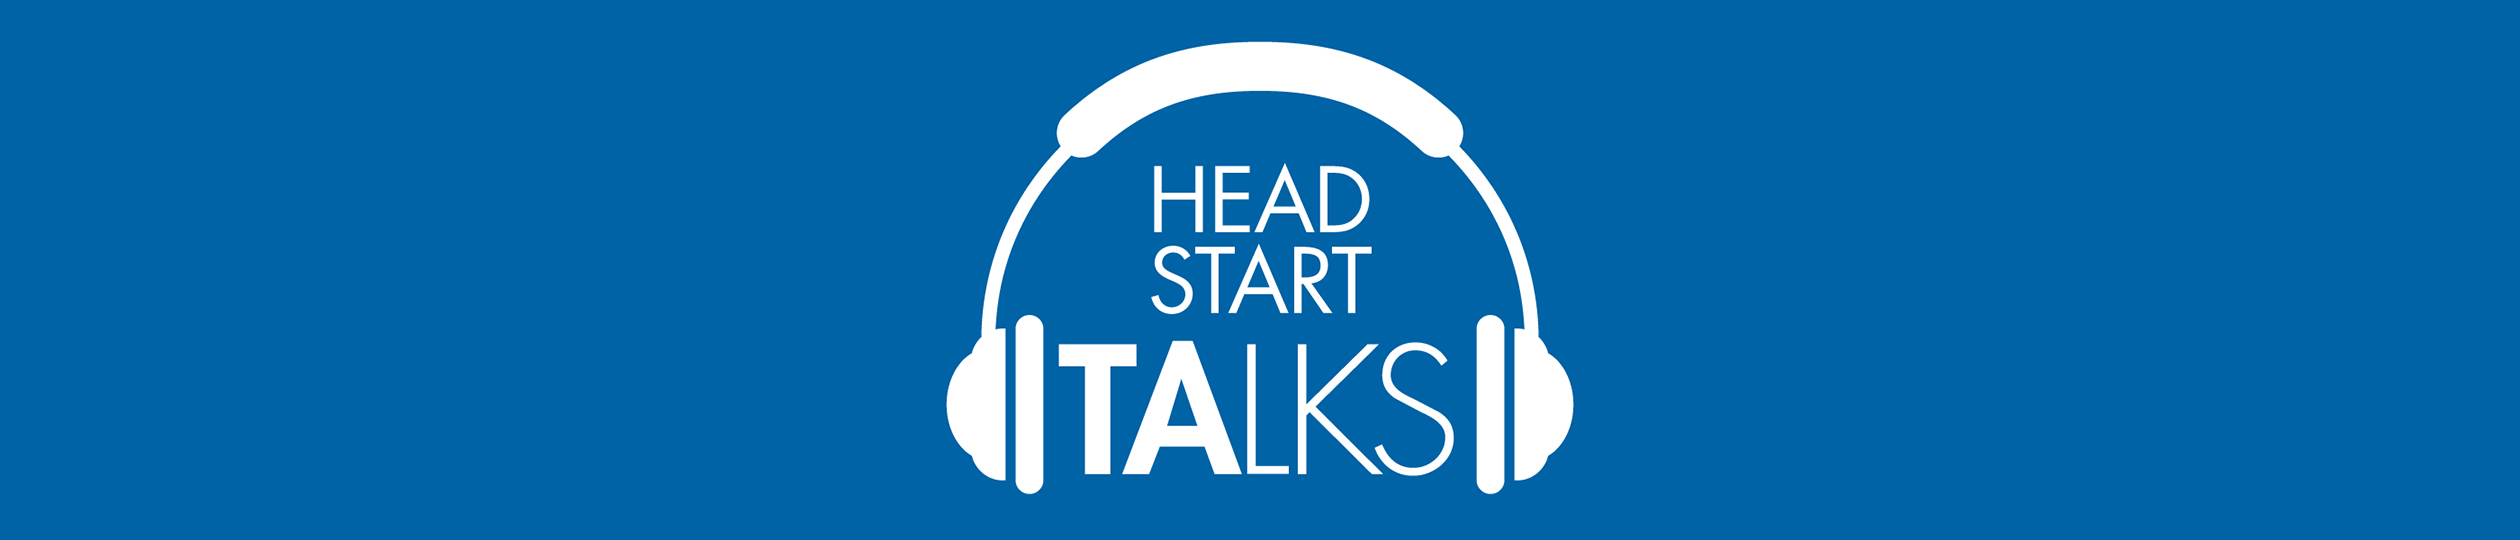 Cintillo azul con Head Start Talks y unos auriculares